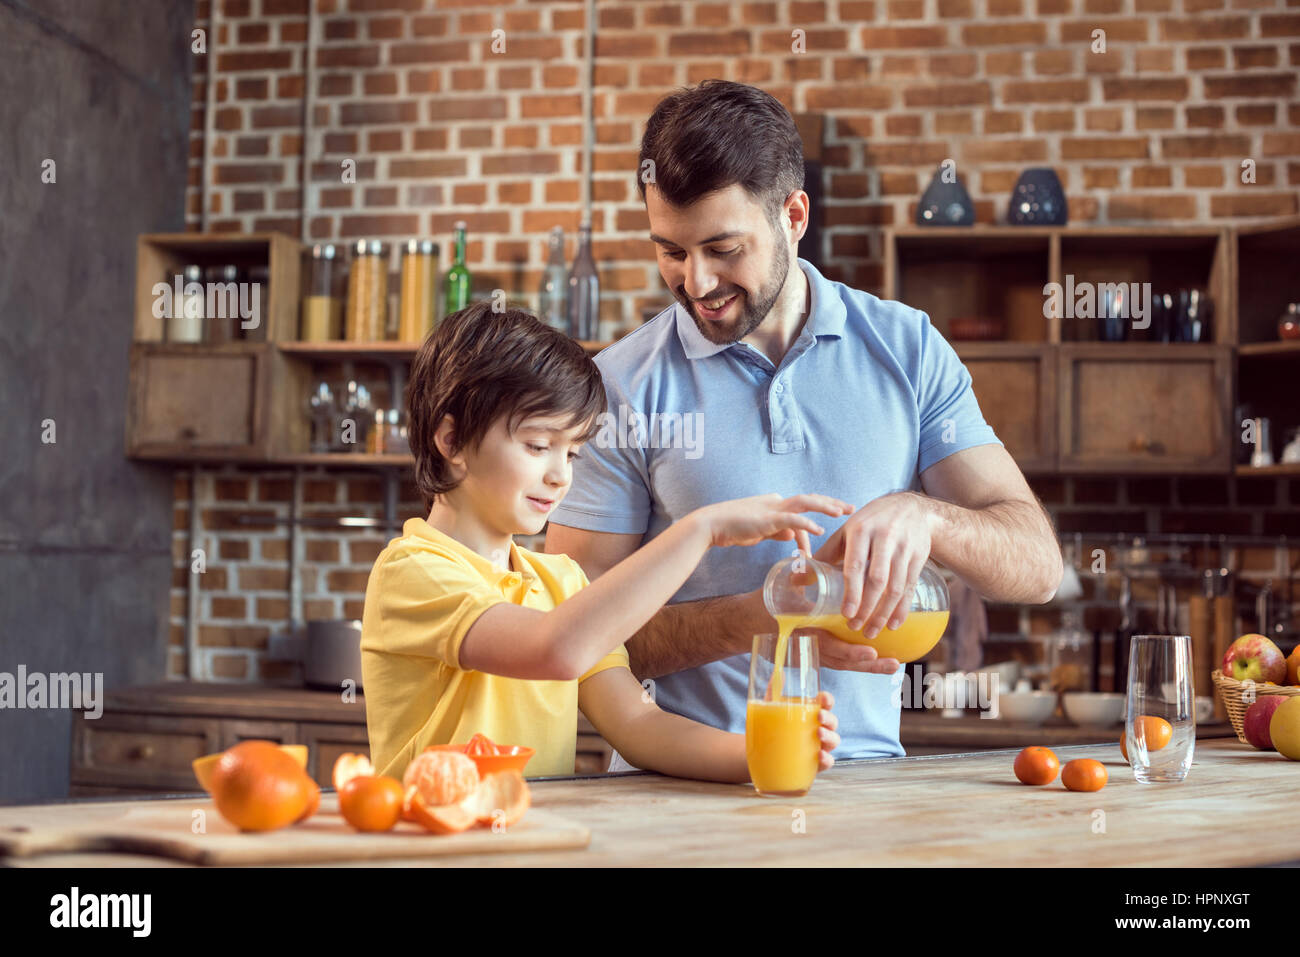 father and son pouring fresh juice in glass - Stock Image